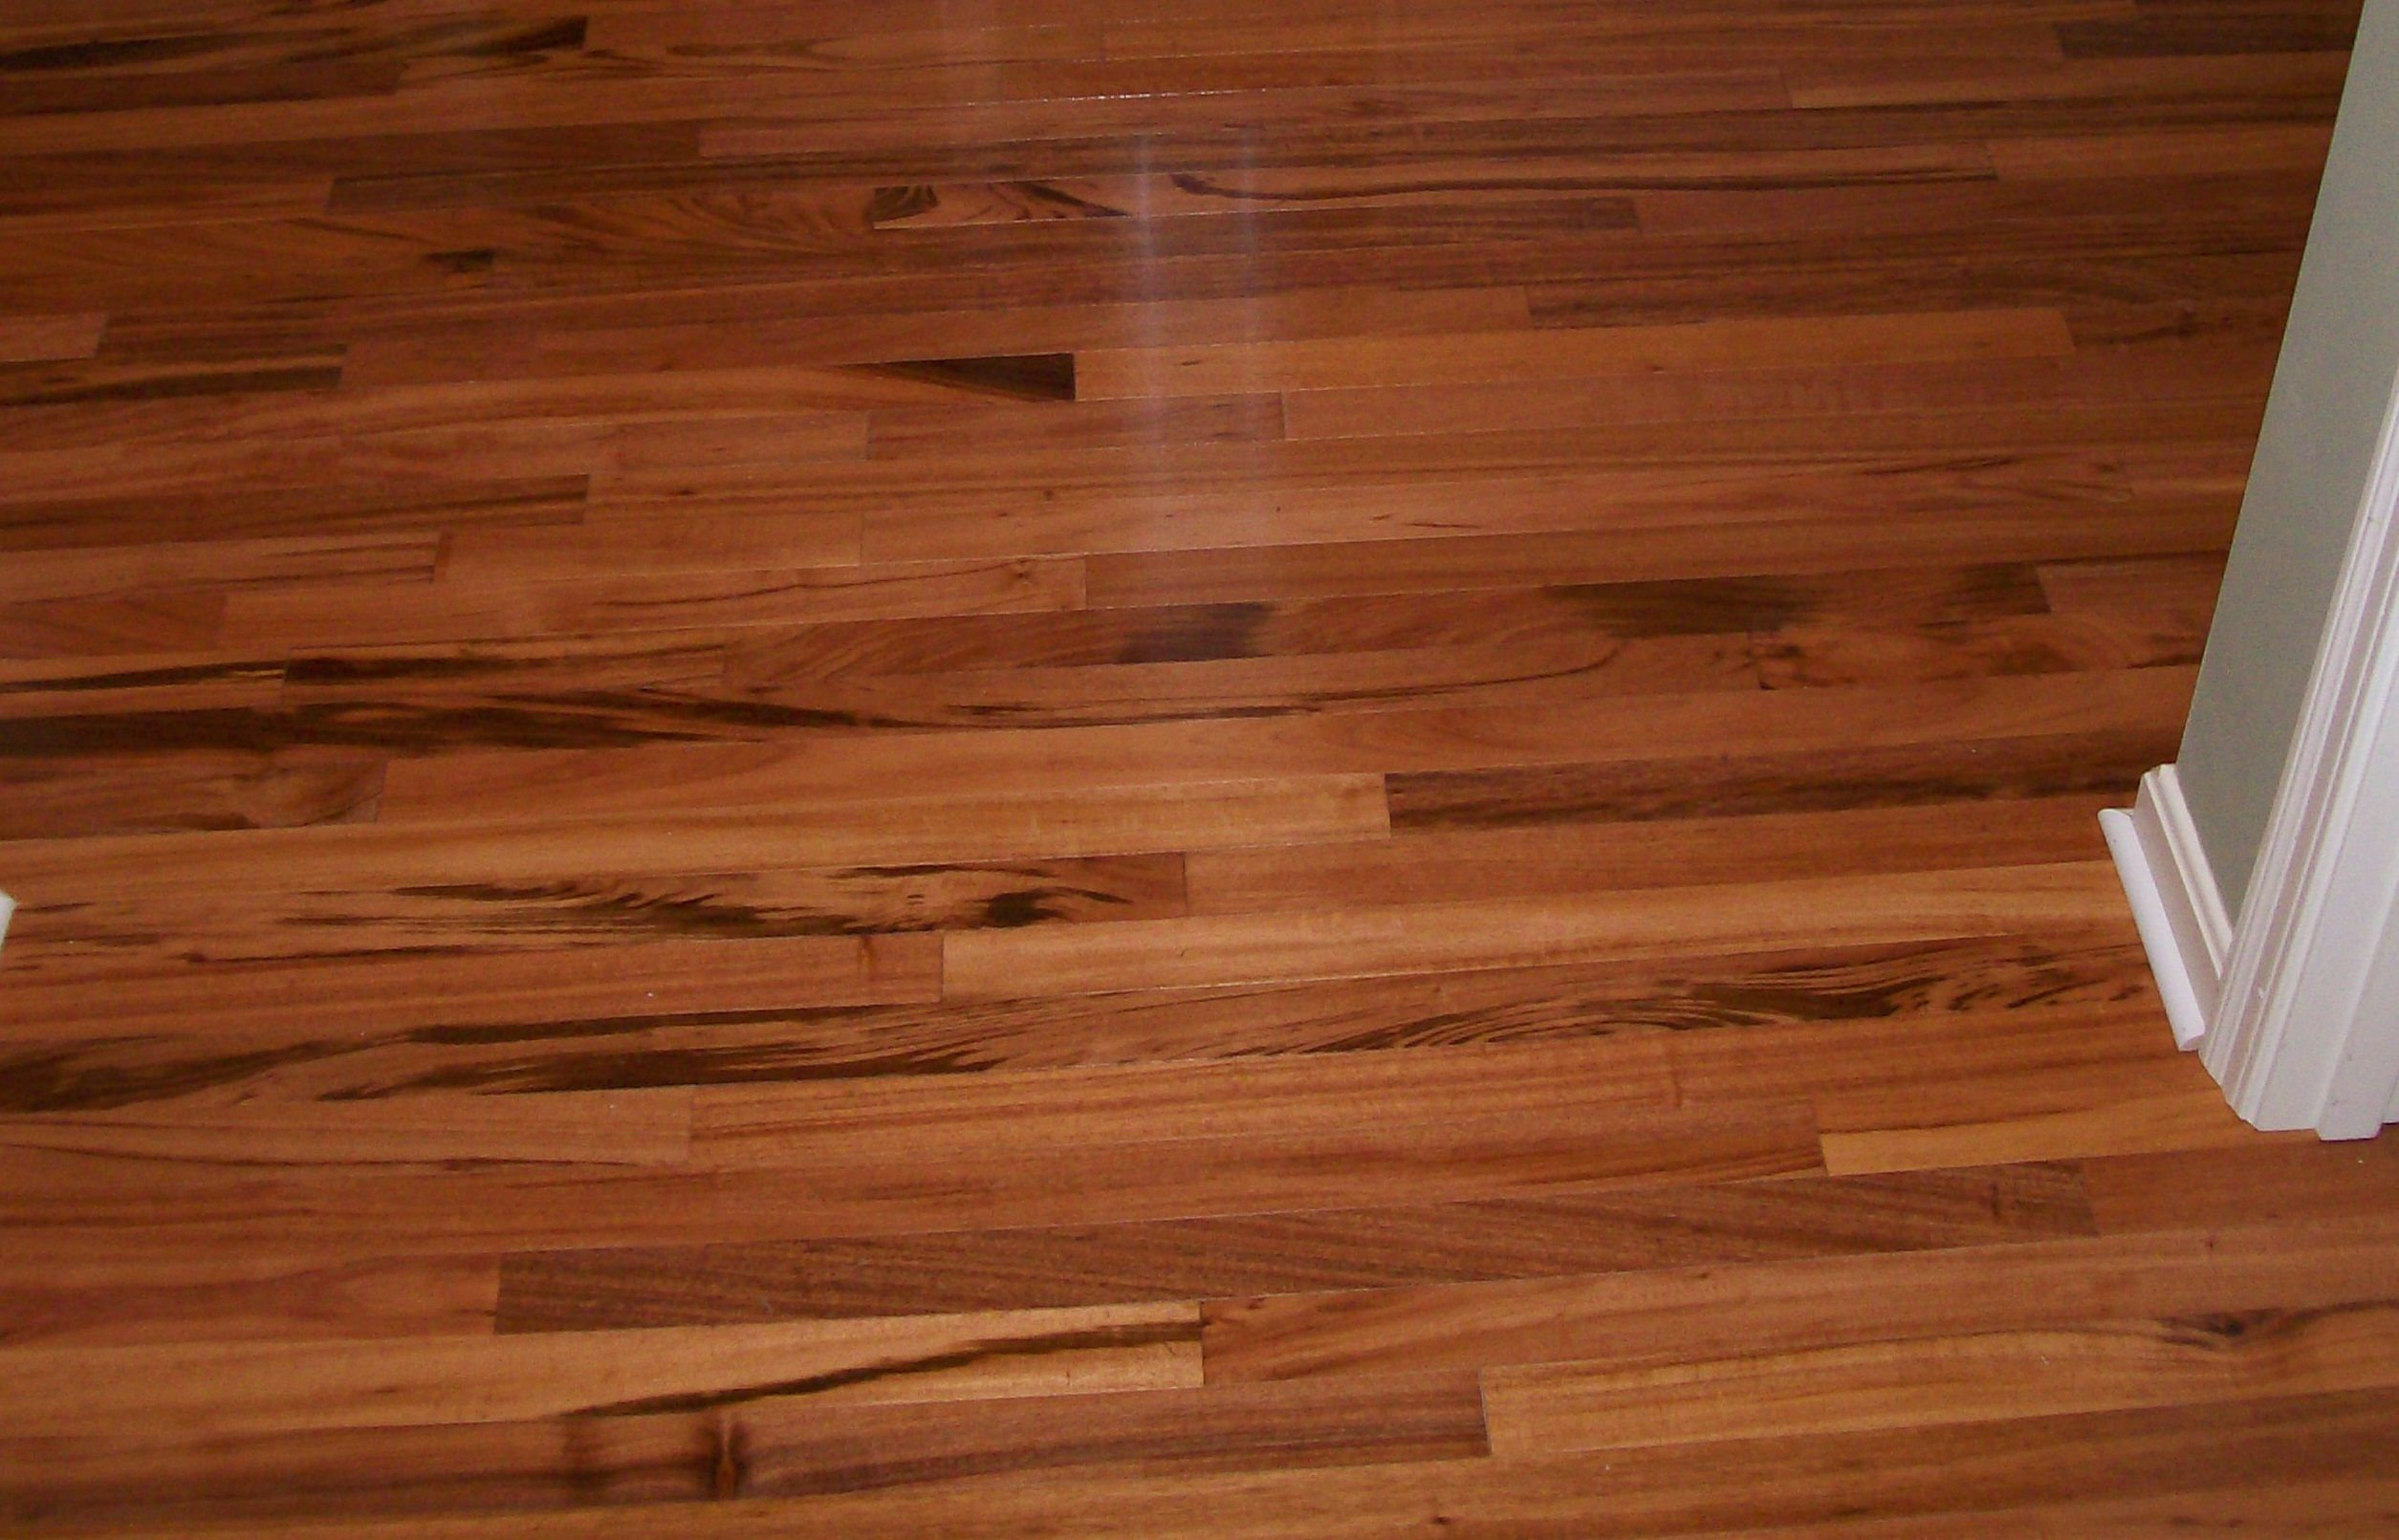 1000+ images about Wood floors on Pinterest - ^